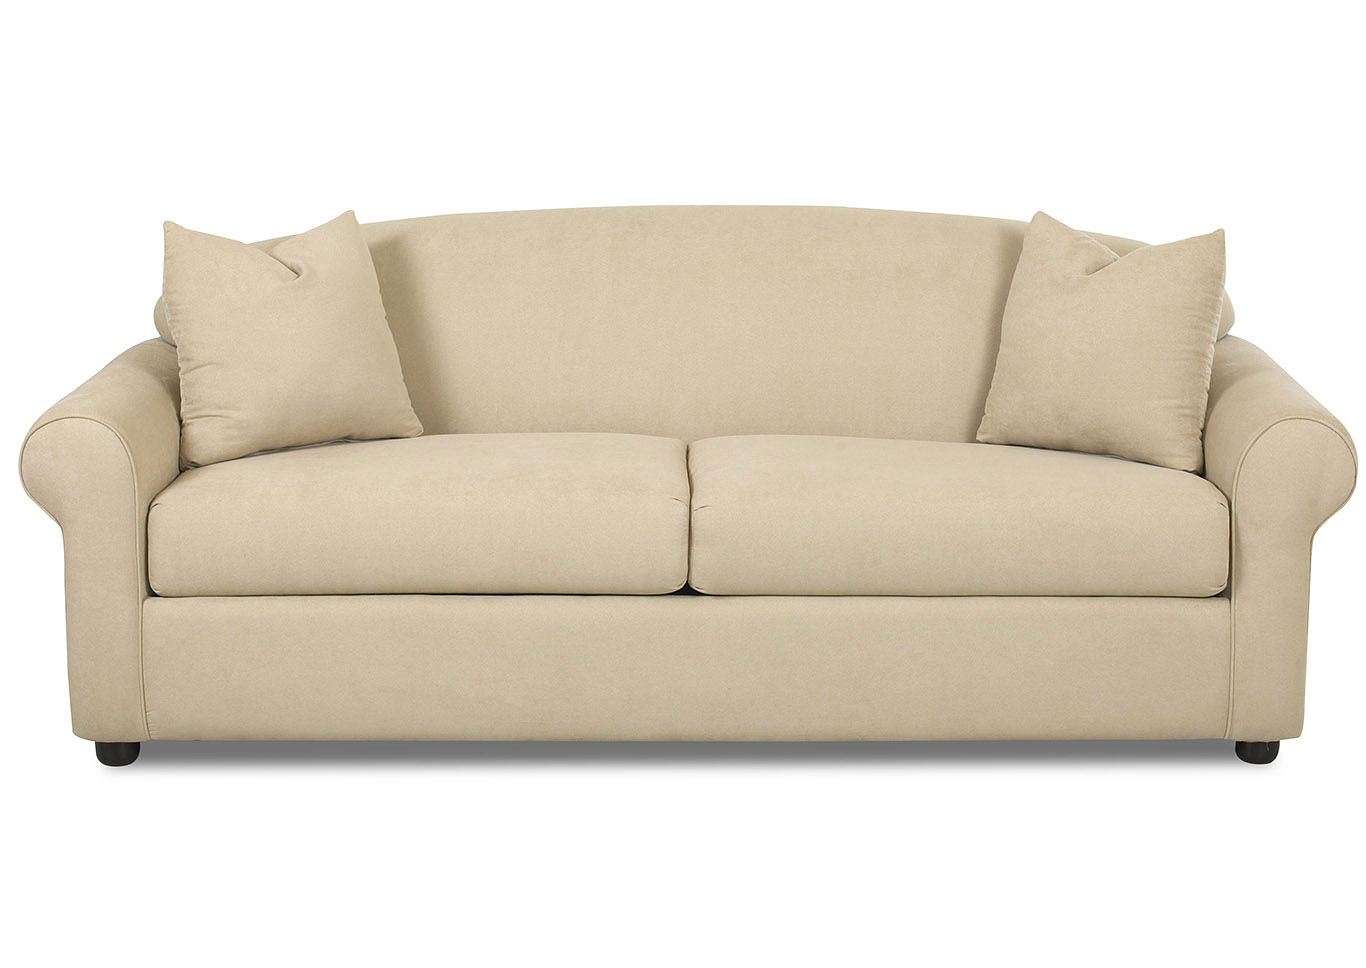 Possibilities Wheat Stationary Fabric Sofa,Klaussner Home Furnishings